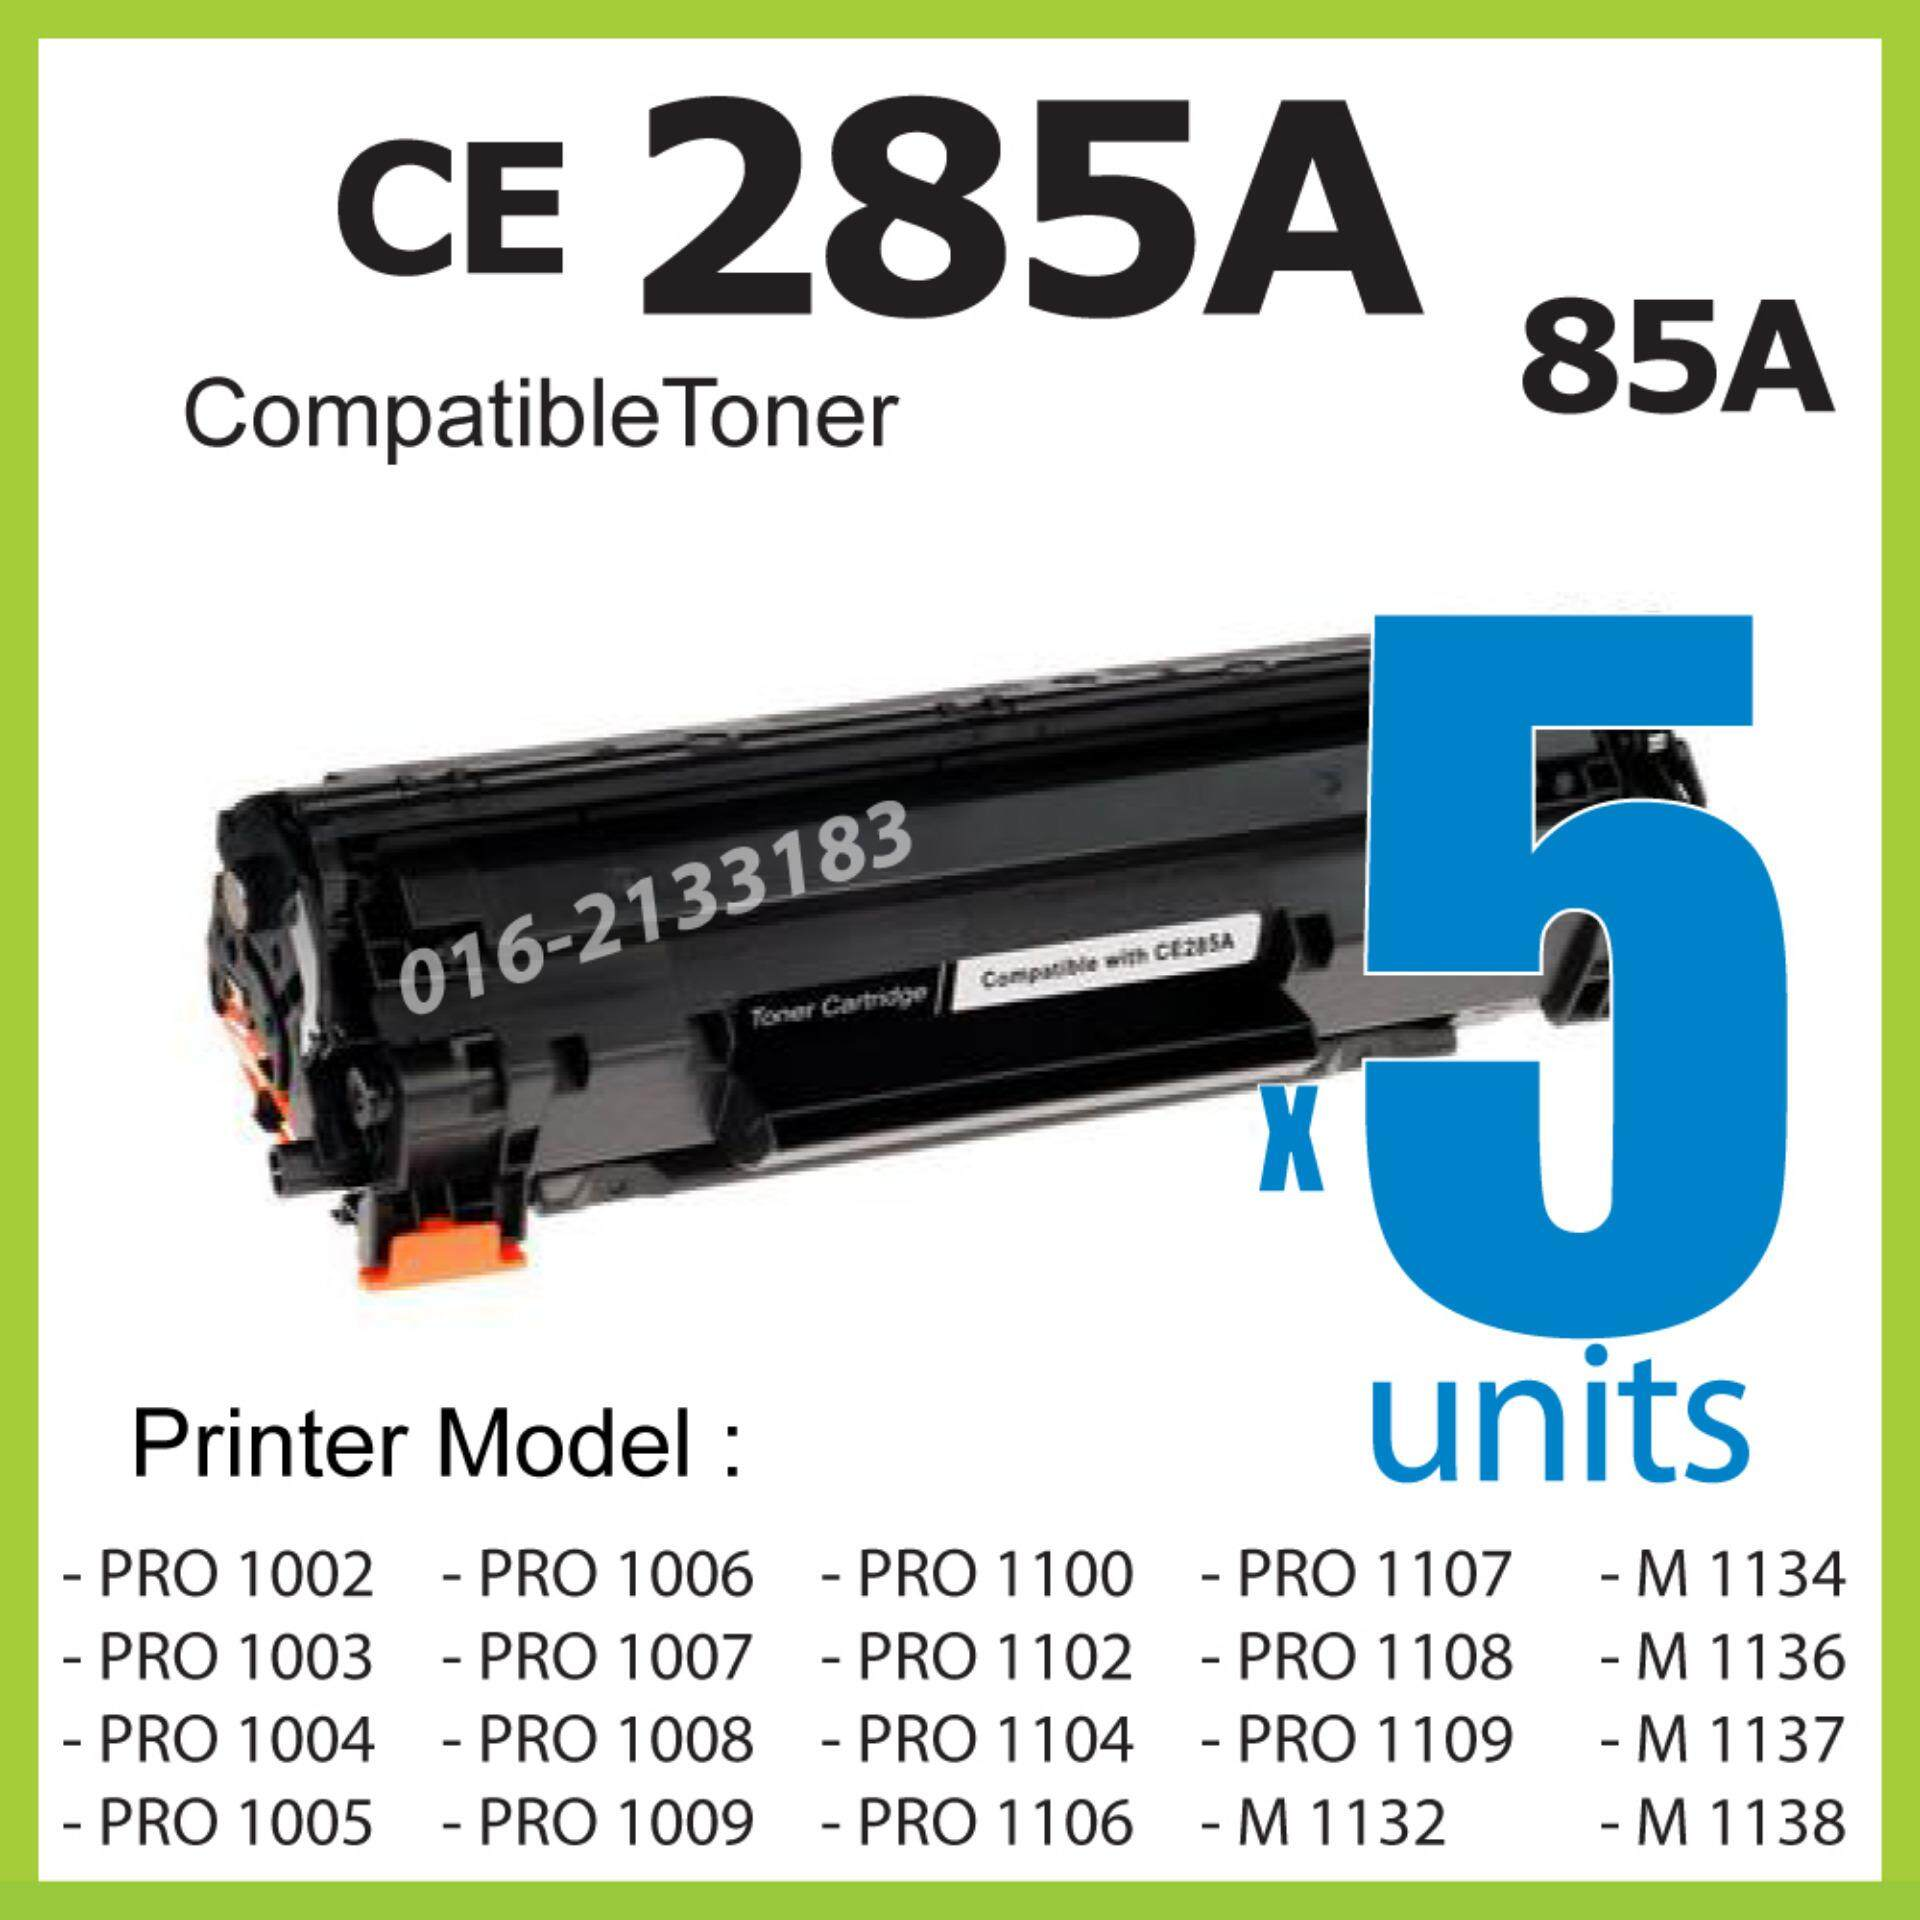 Laser Toner Online Printers Accessories Price In Malaysia Best Hp 85a Compatible Ce 285a 5 Units Cartridge Ce285a Ce285 Color Laserjet P1002 P1003